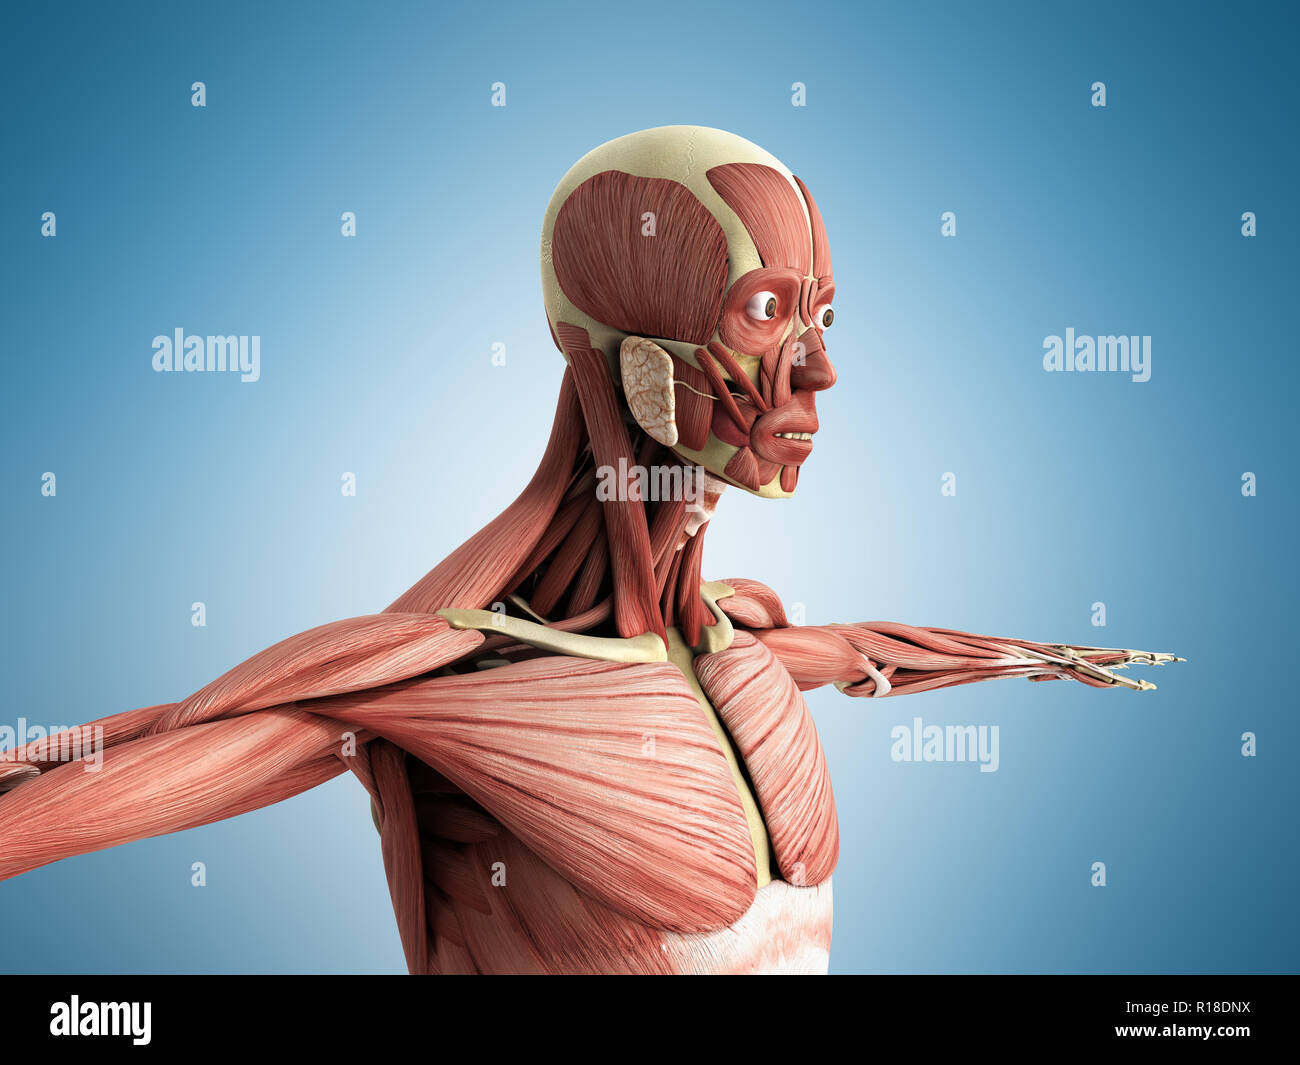 Human Muscle Anatomy 3d Render On Blue Stock Photo 224535862 Alamy